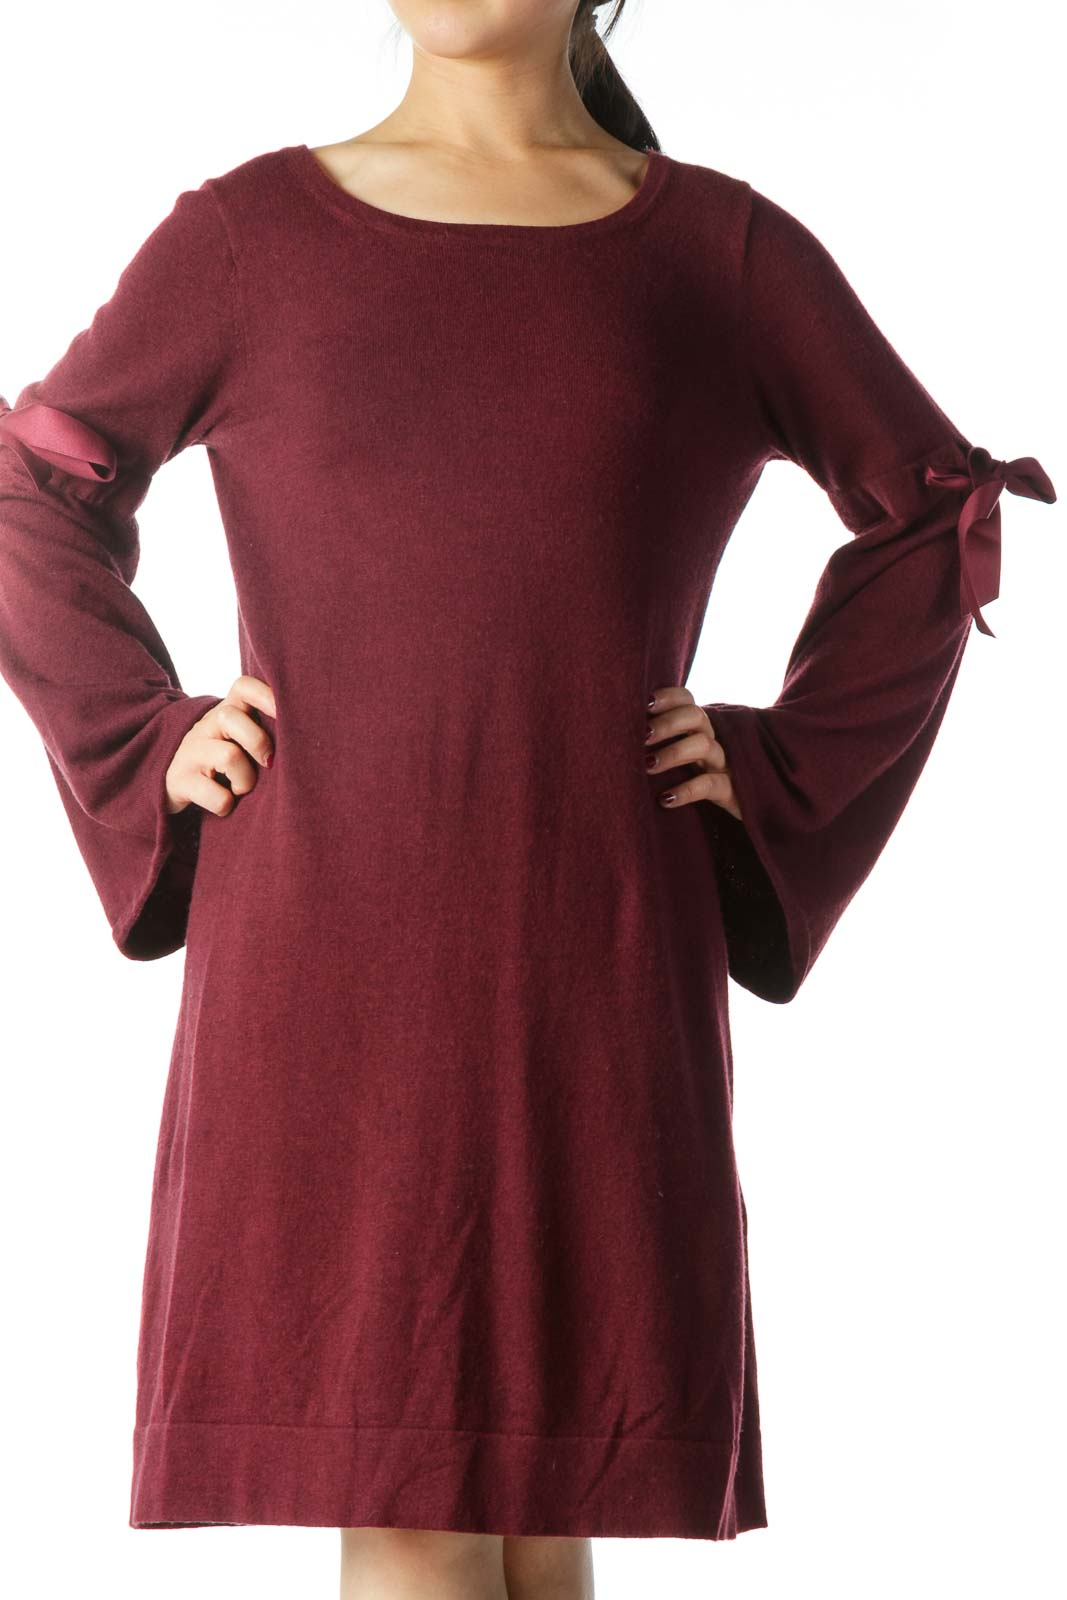 Burgundy Ribbon Bell Sleeves Knit Dress